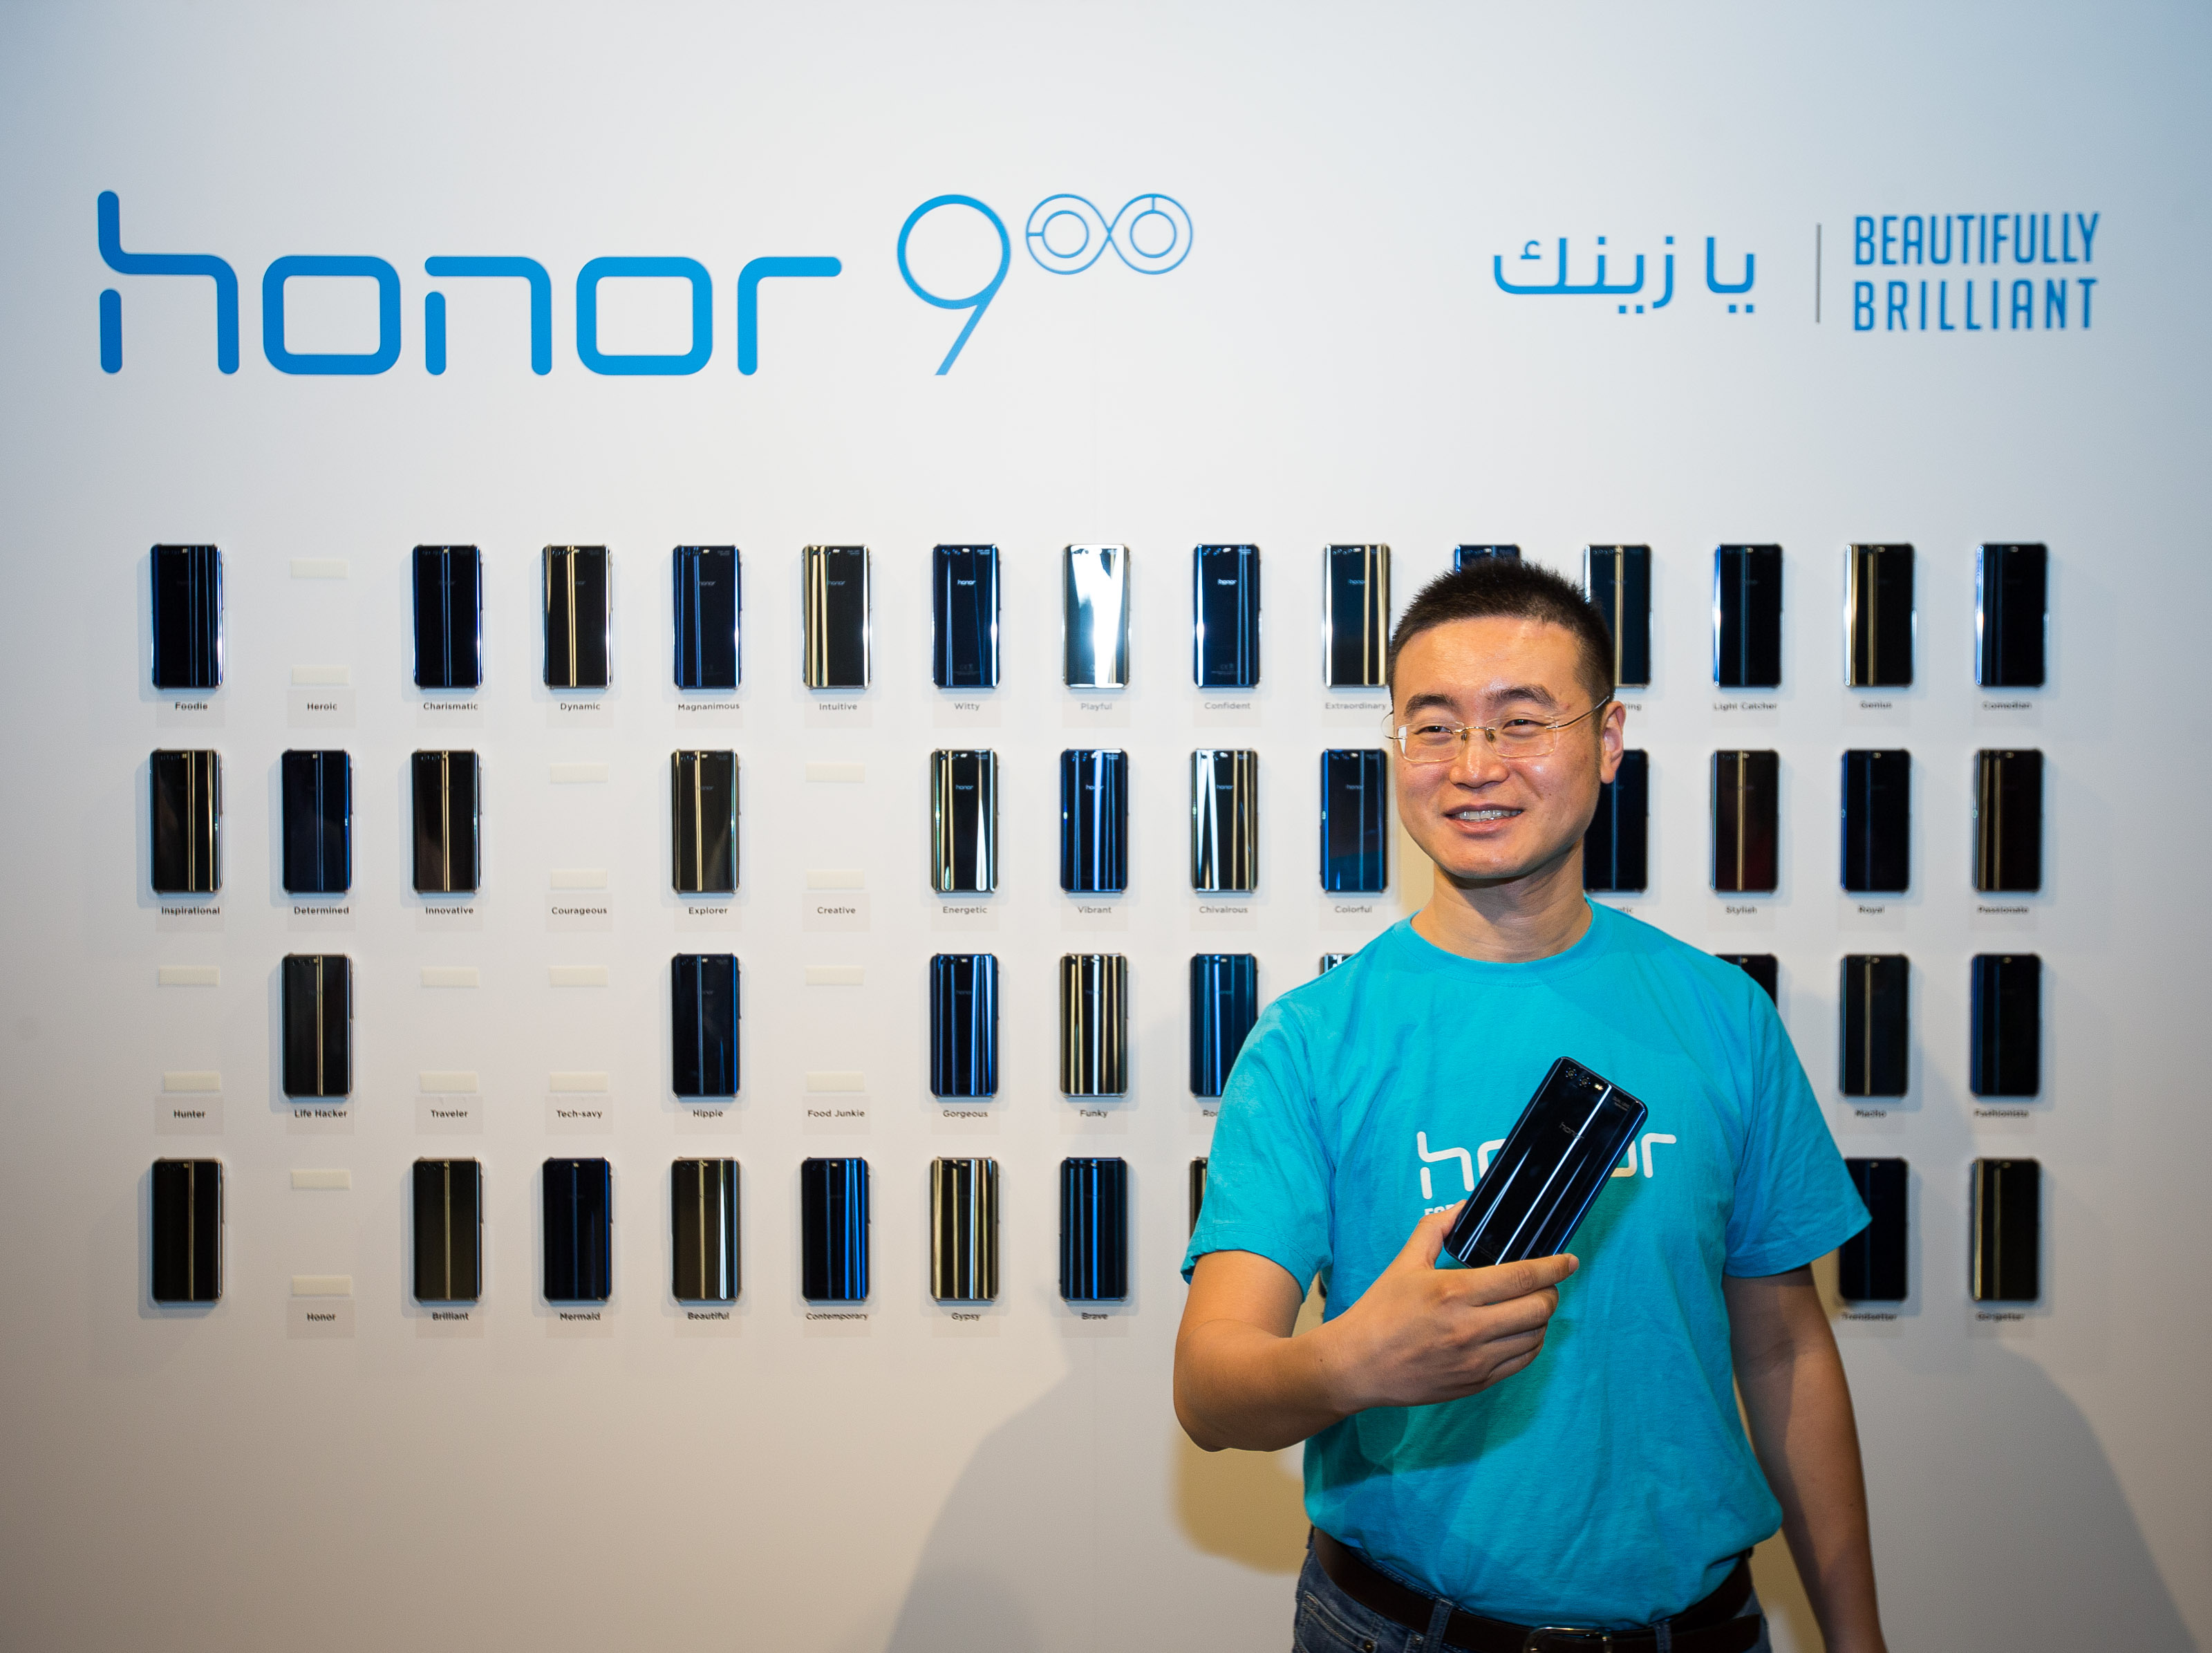 Honor 9 Launched in the UAE